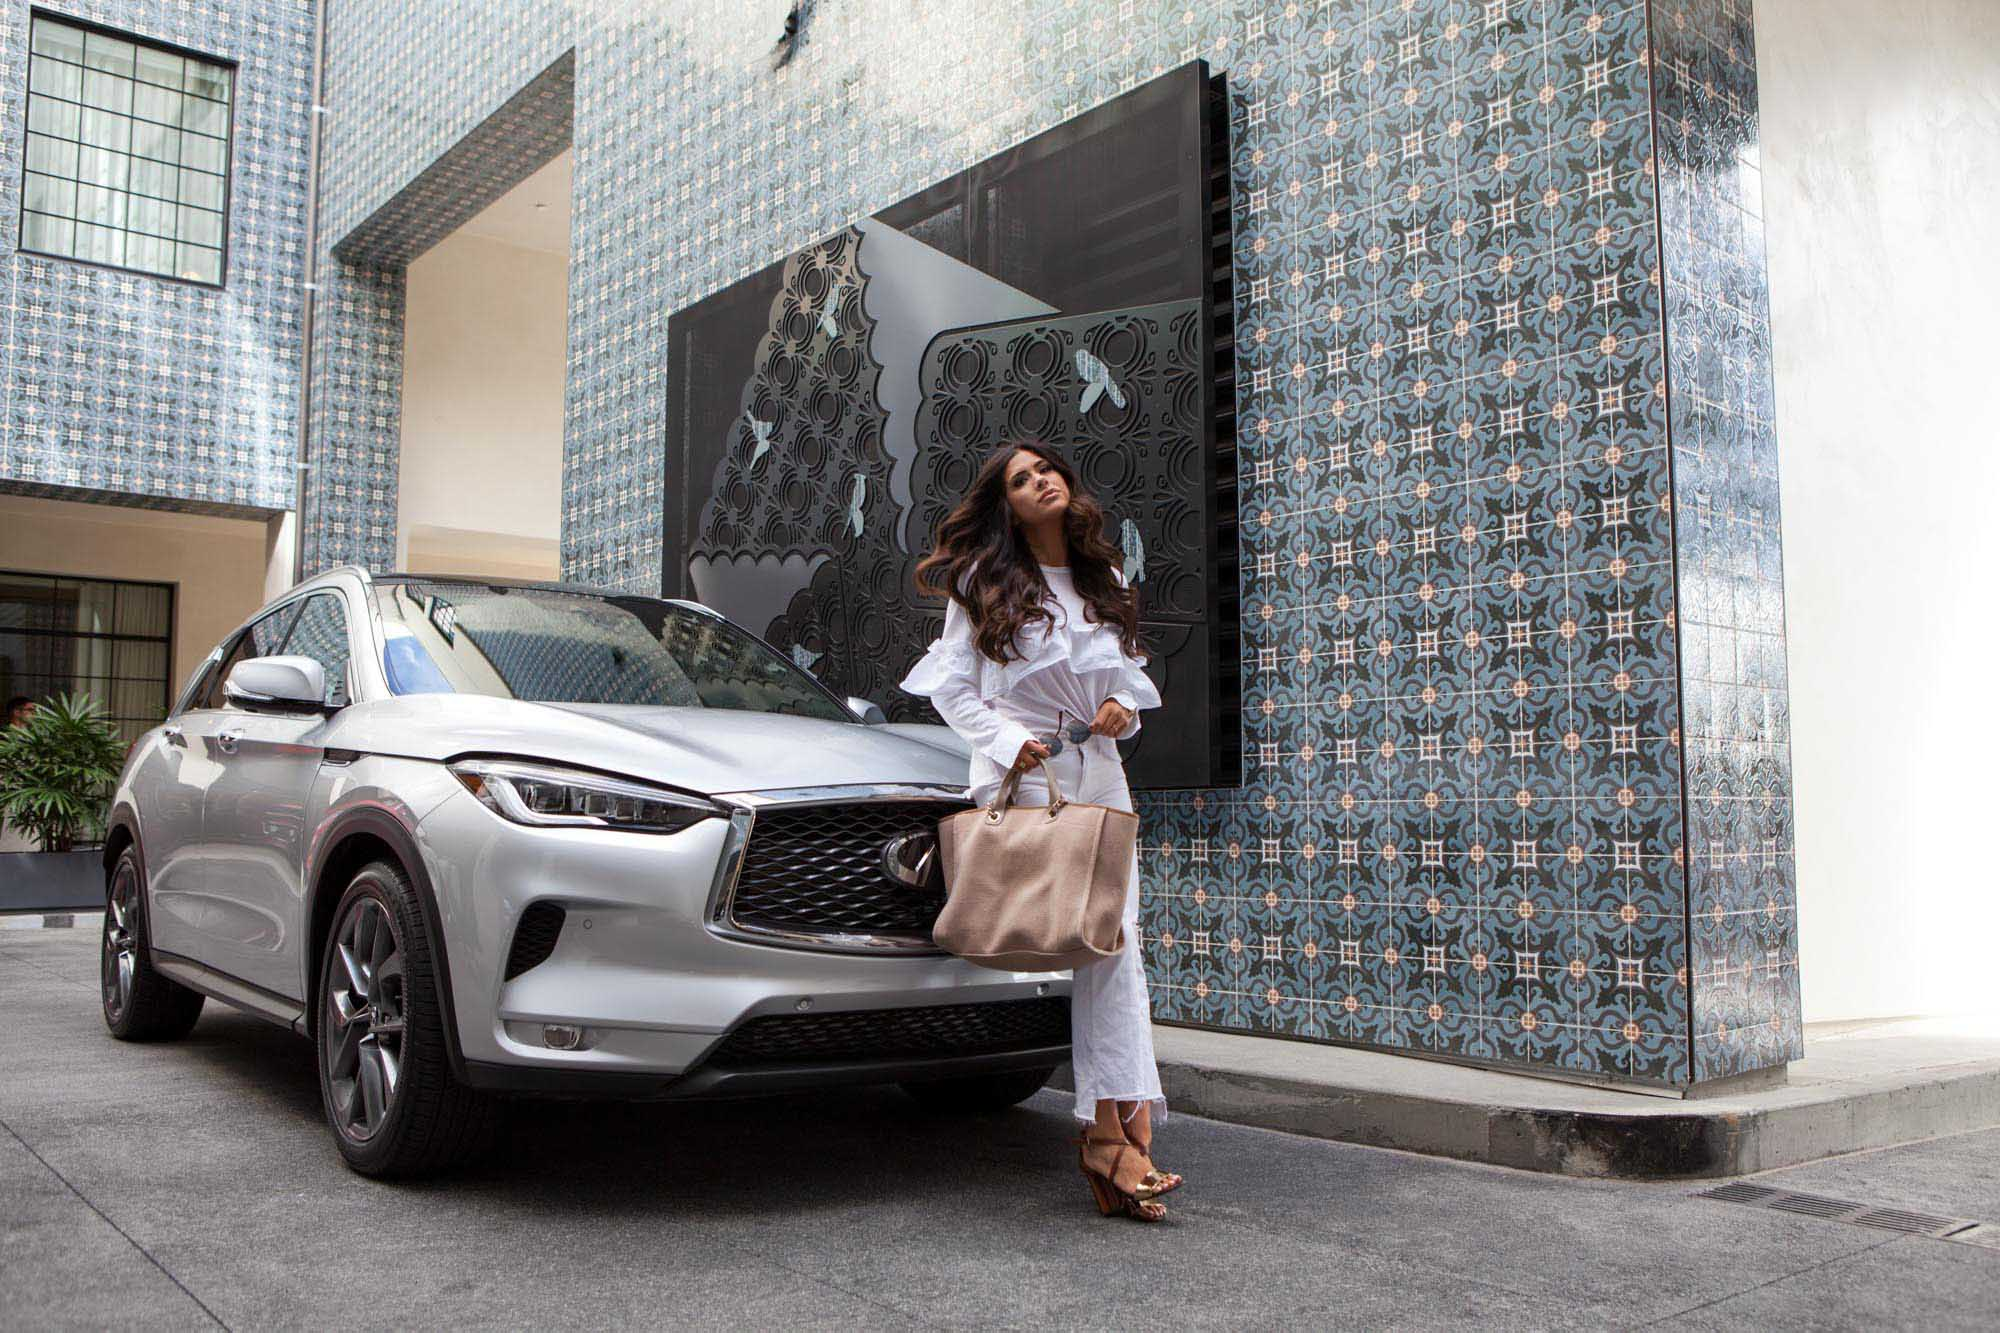 Emily Ann Gemma in front of Infiniti QX-50 hotel in Los Angeles, California | Fashion Photography | Car Photography | @emilyanngemma | THE SWEETEST THING | @thegemmagang | Commercial Photography | Shot for Crispin Porter + Bogusky